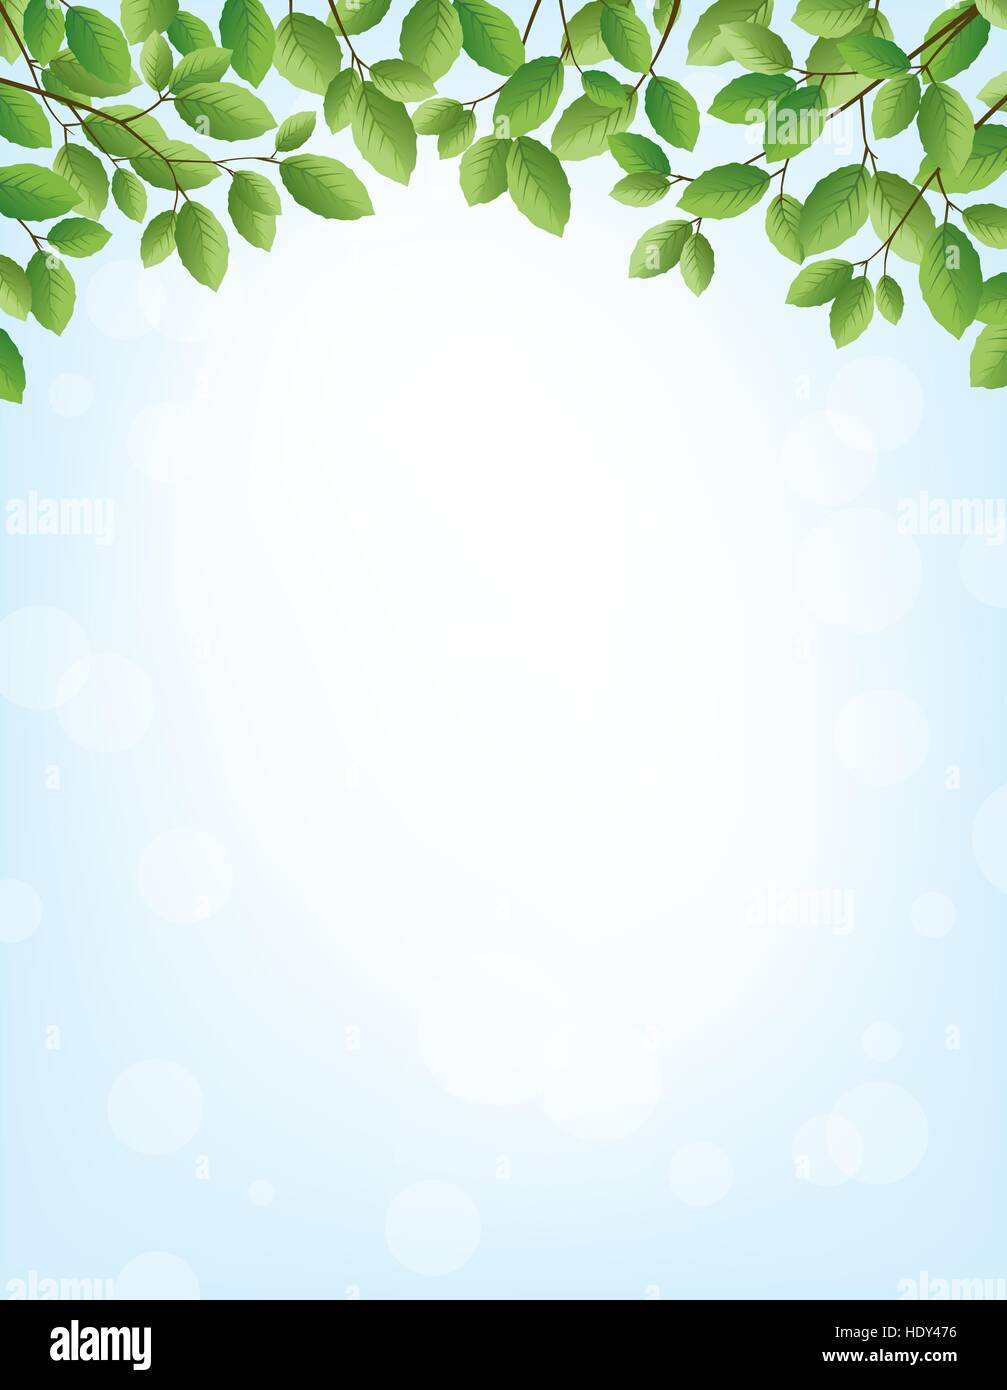 Background for springtime, border of leaves on top, large copy space - Stock Vector